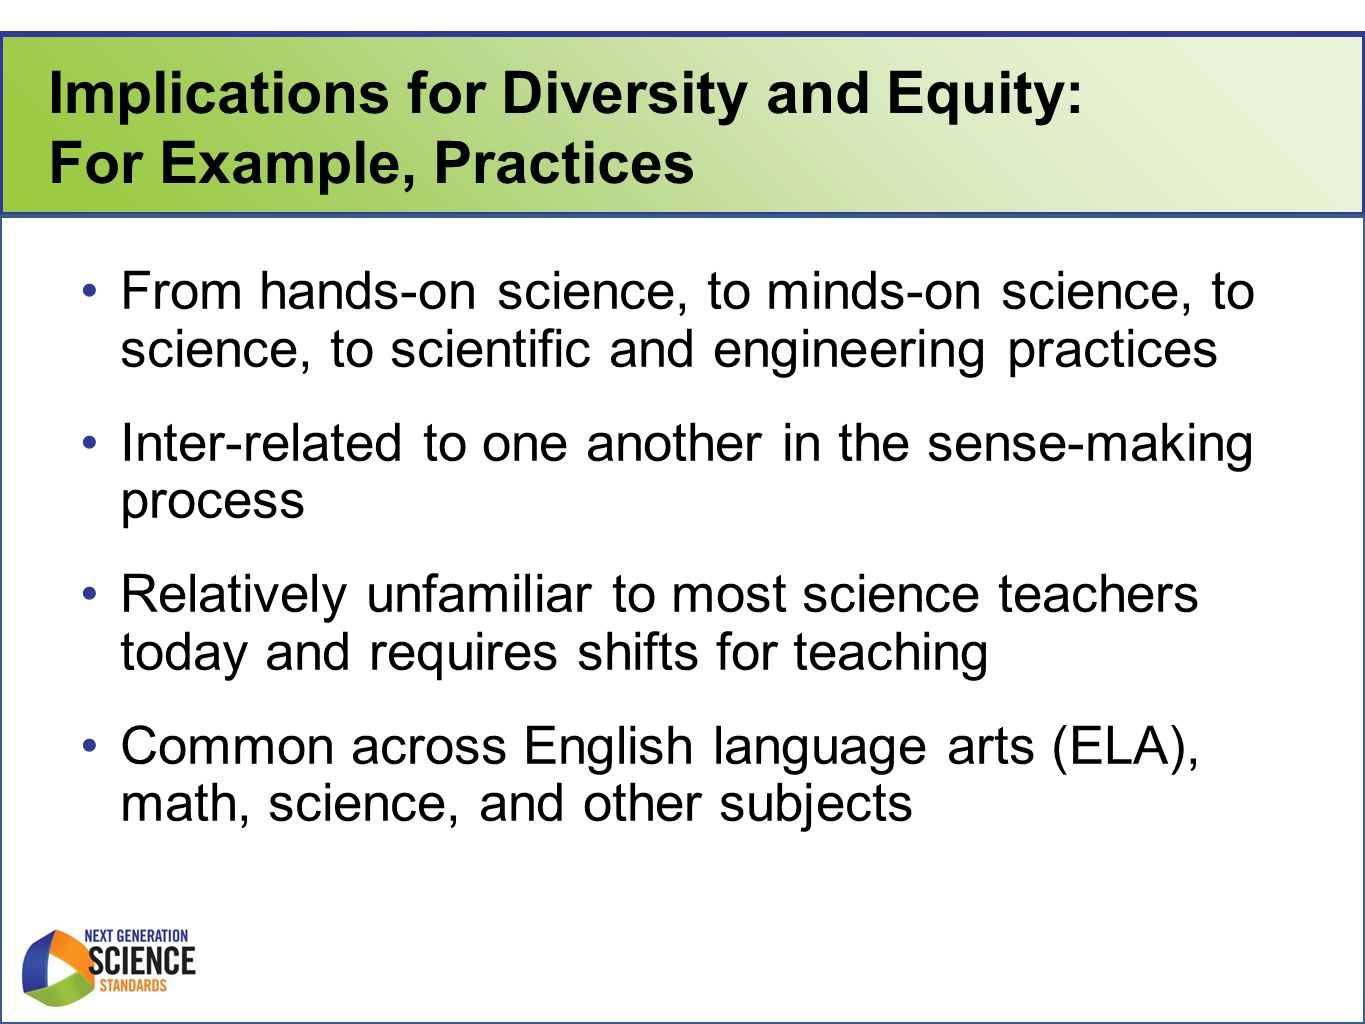 Implications for Diversity and Equity: For Example, Practices From hands-on science, to minds-on science, to science, to scientific and engineering practices Inter-related to one another in the sense-making process Relatively unfamiliar to most science teachers today and requires shifts for teaching Common across English language arts (ELA), math, science, and other subjects